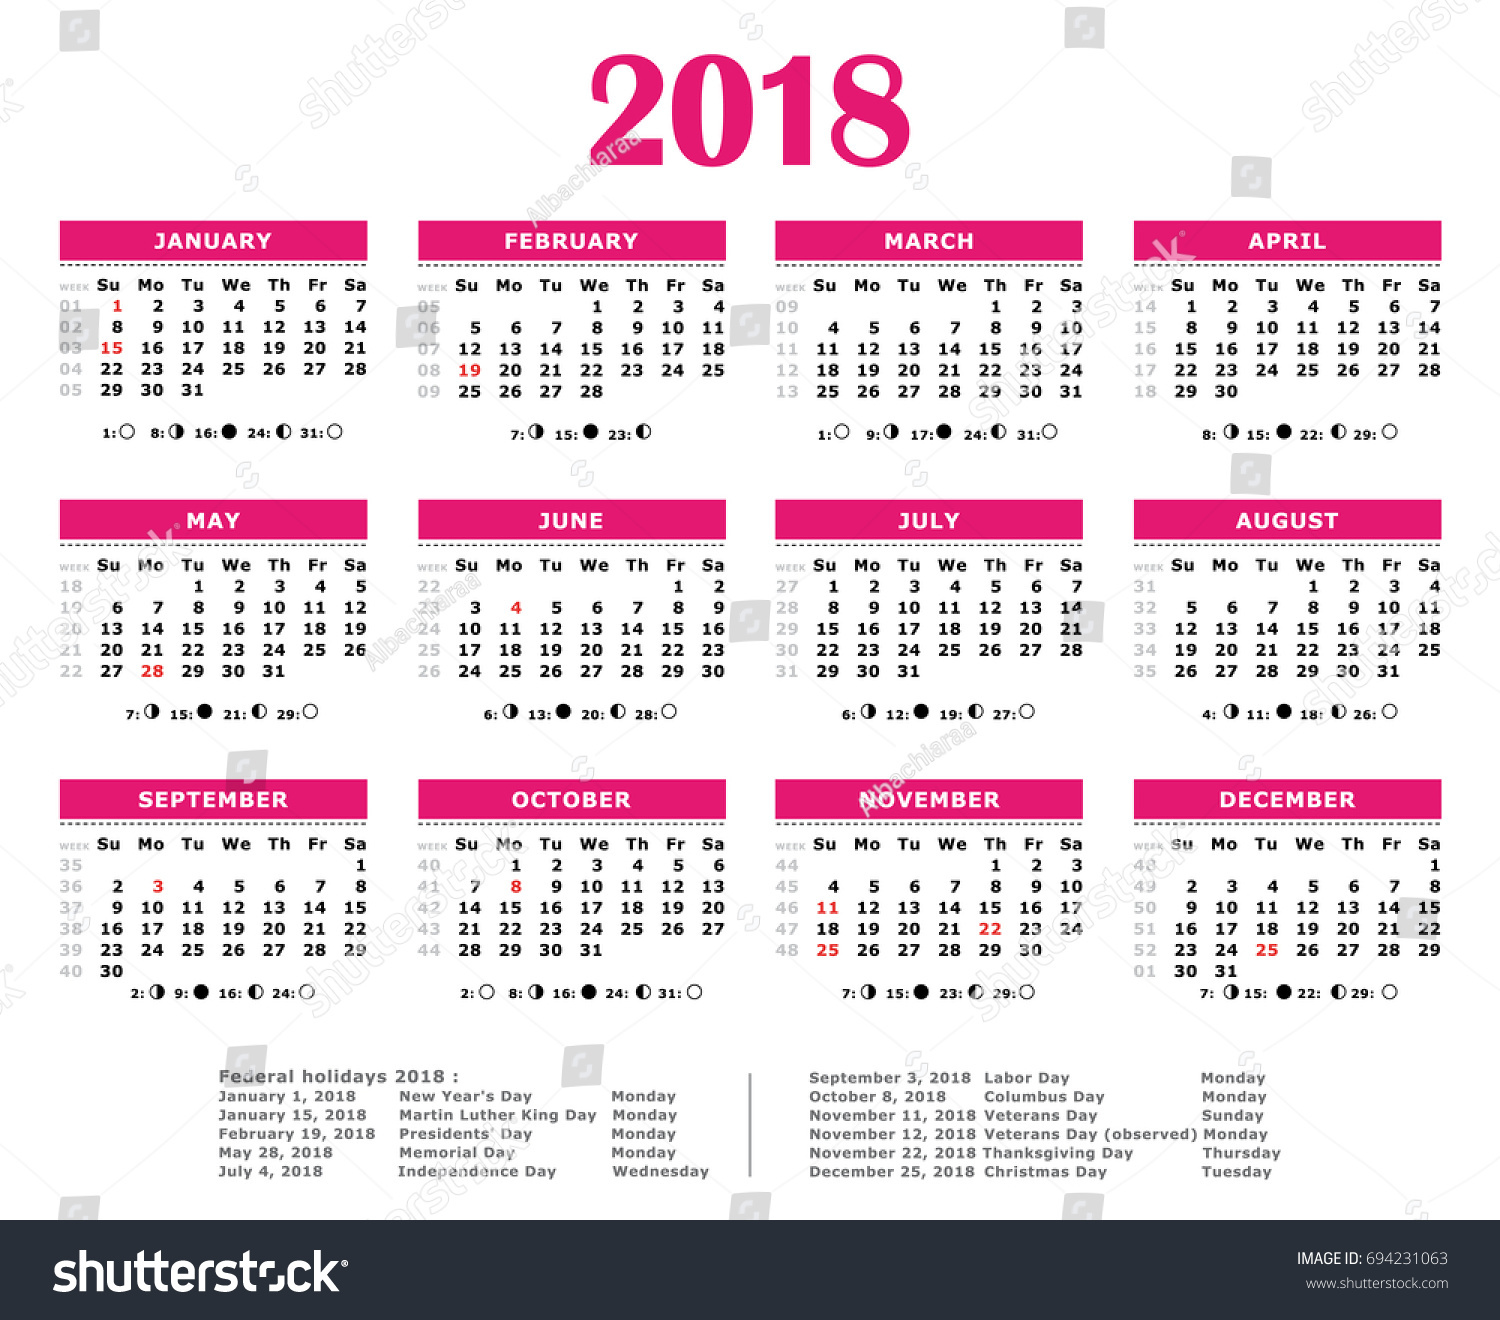 2018 pink yearly calendar federal holidays moon and numbers of weeks